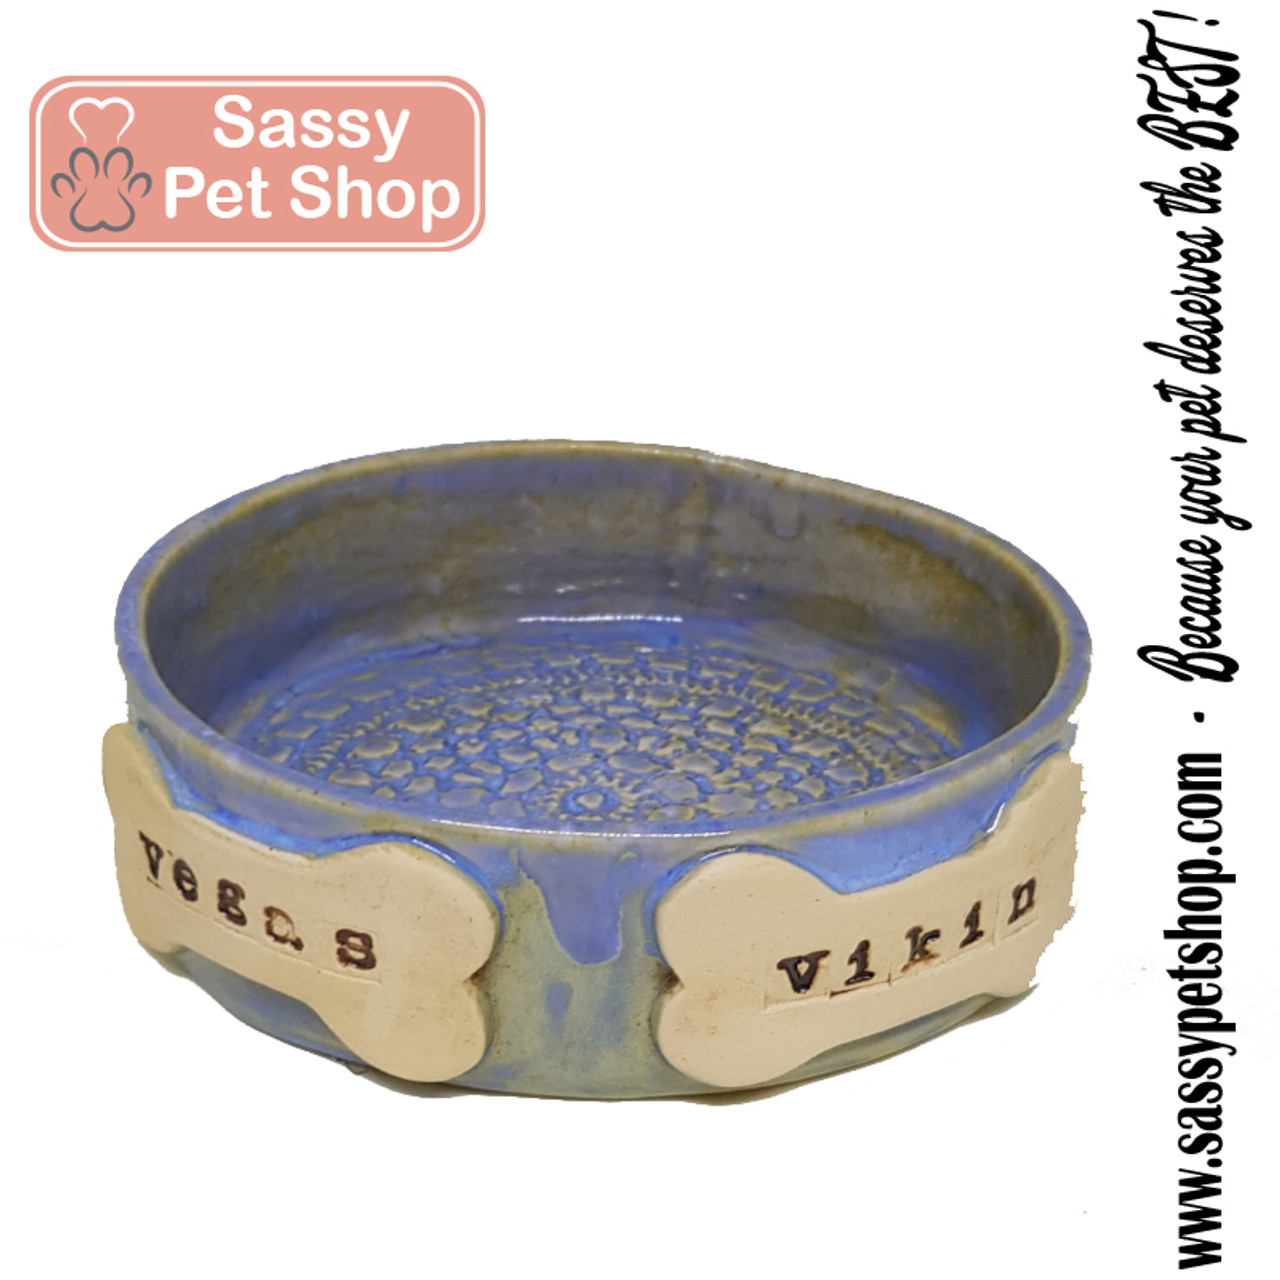 Twisted Tree-Personalized Dog Bowl- MEDIUM -2 NAME-Handmade in UAE